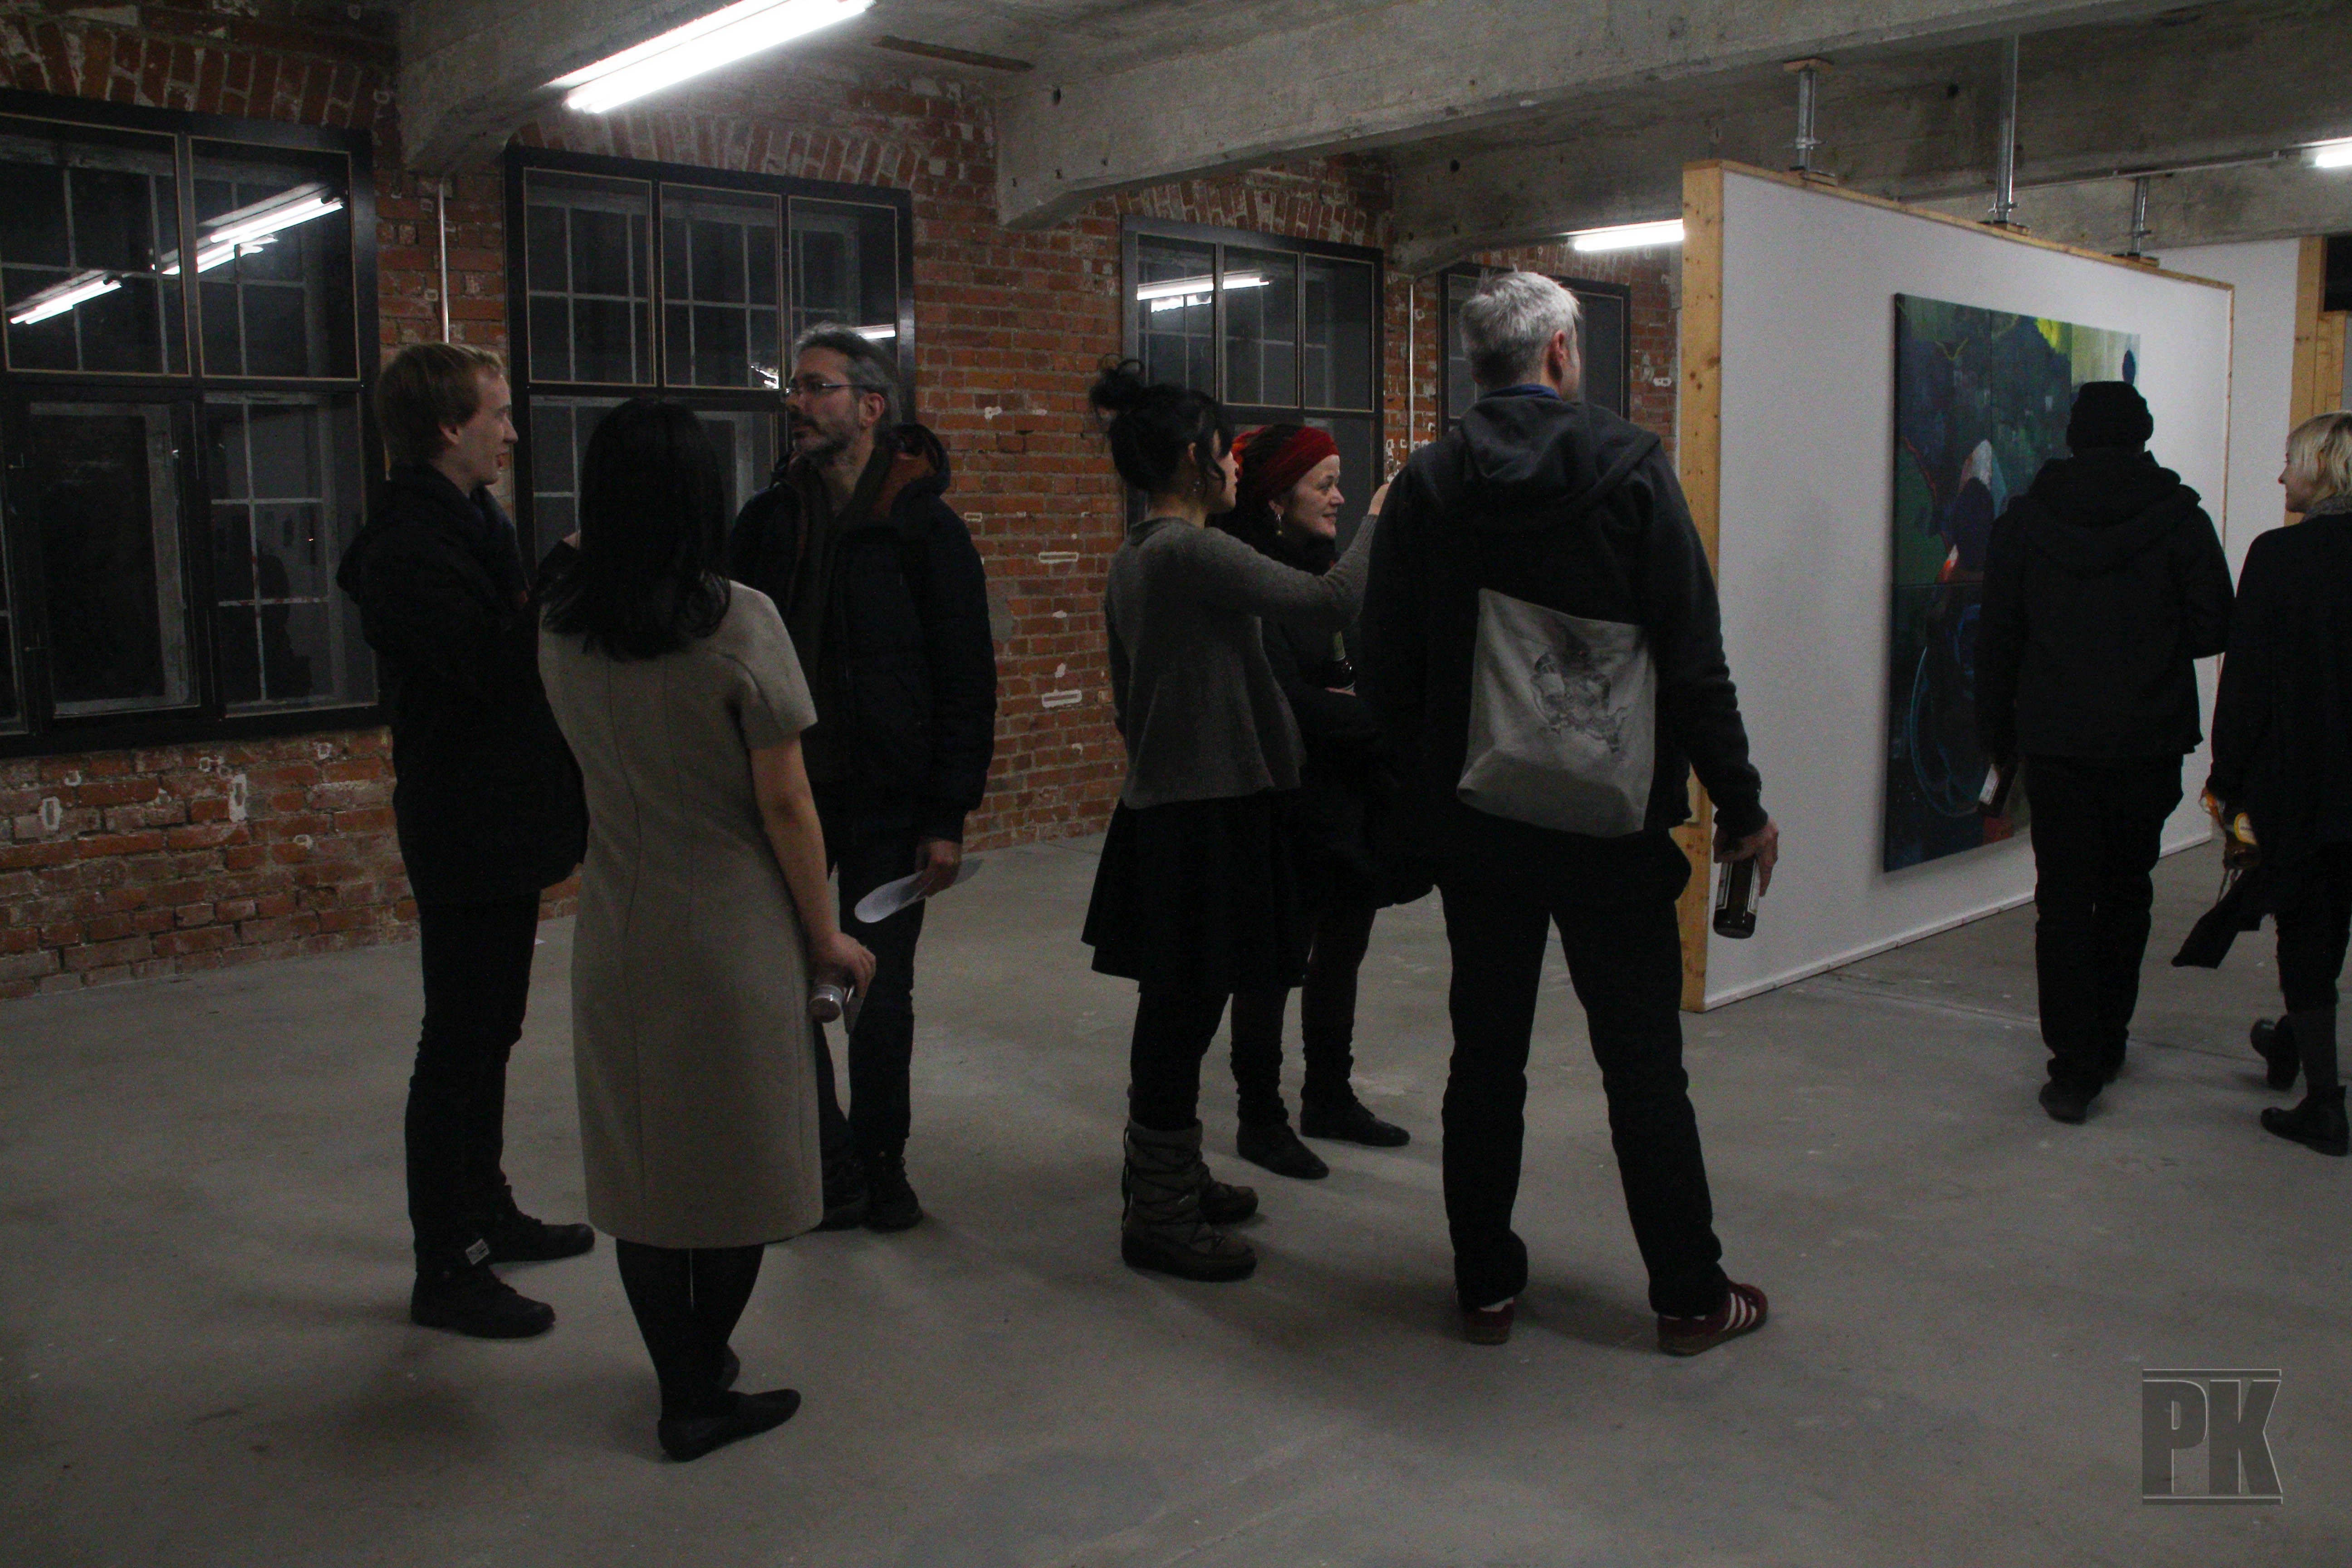 181418 vernissage (review) SPOOR PK rd 37 watermark